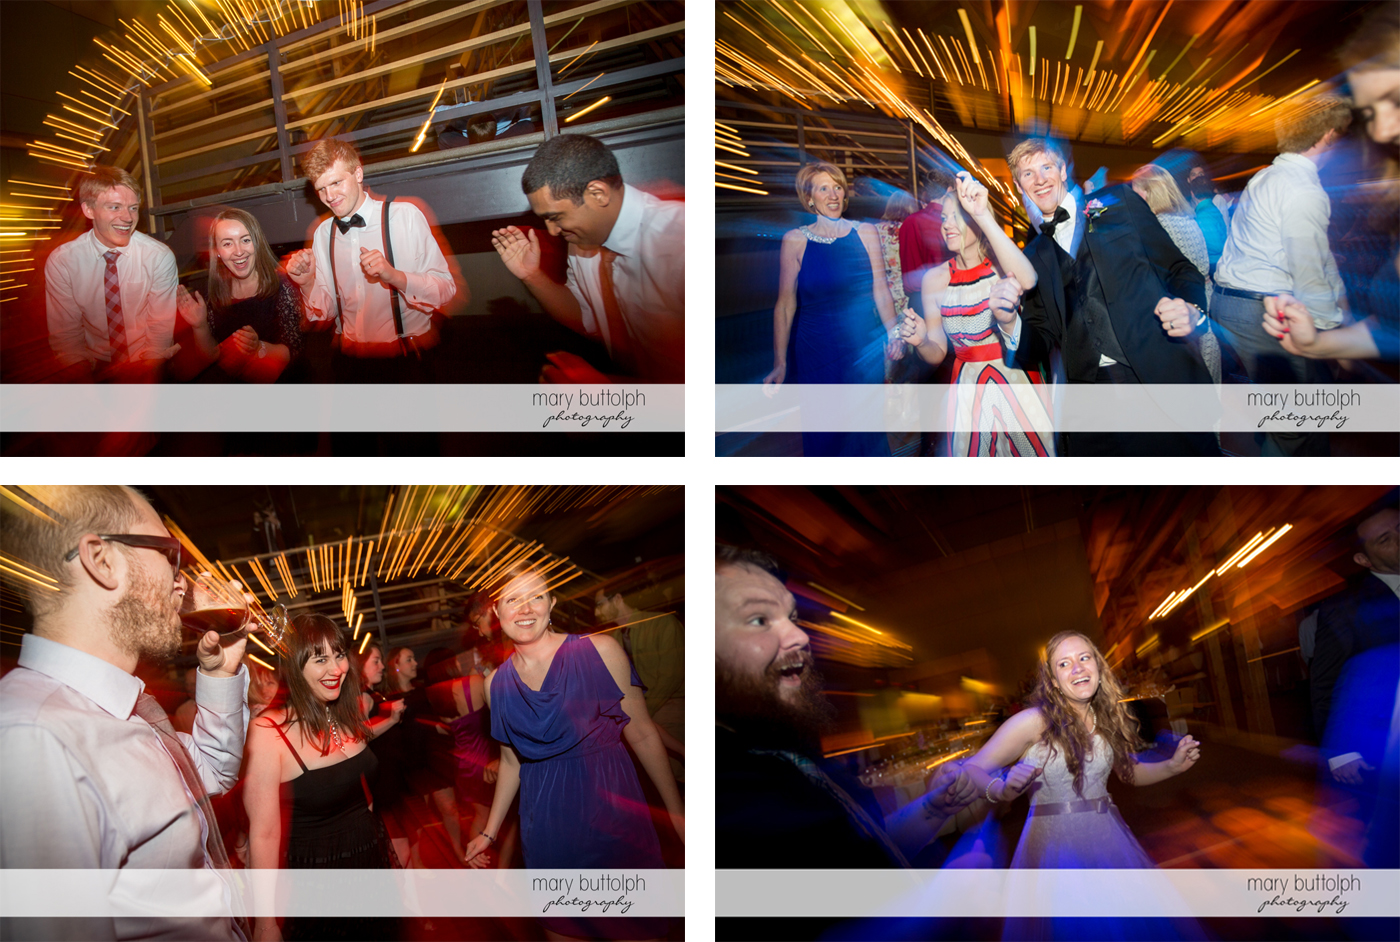 Scenes from the dance floor at the Lodge at Welch Allyn Wedding